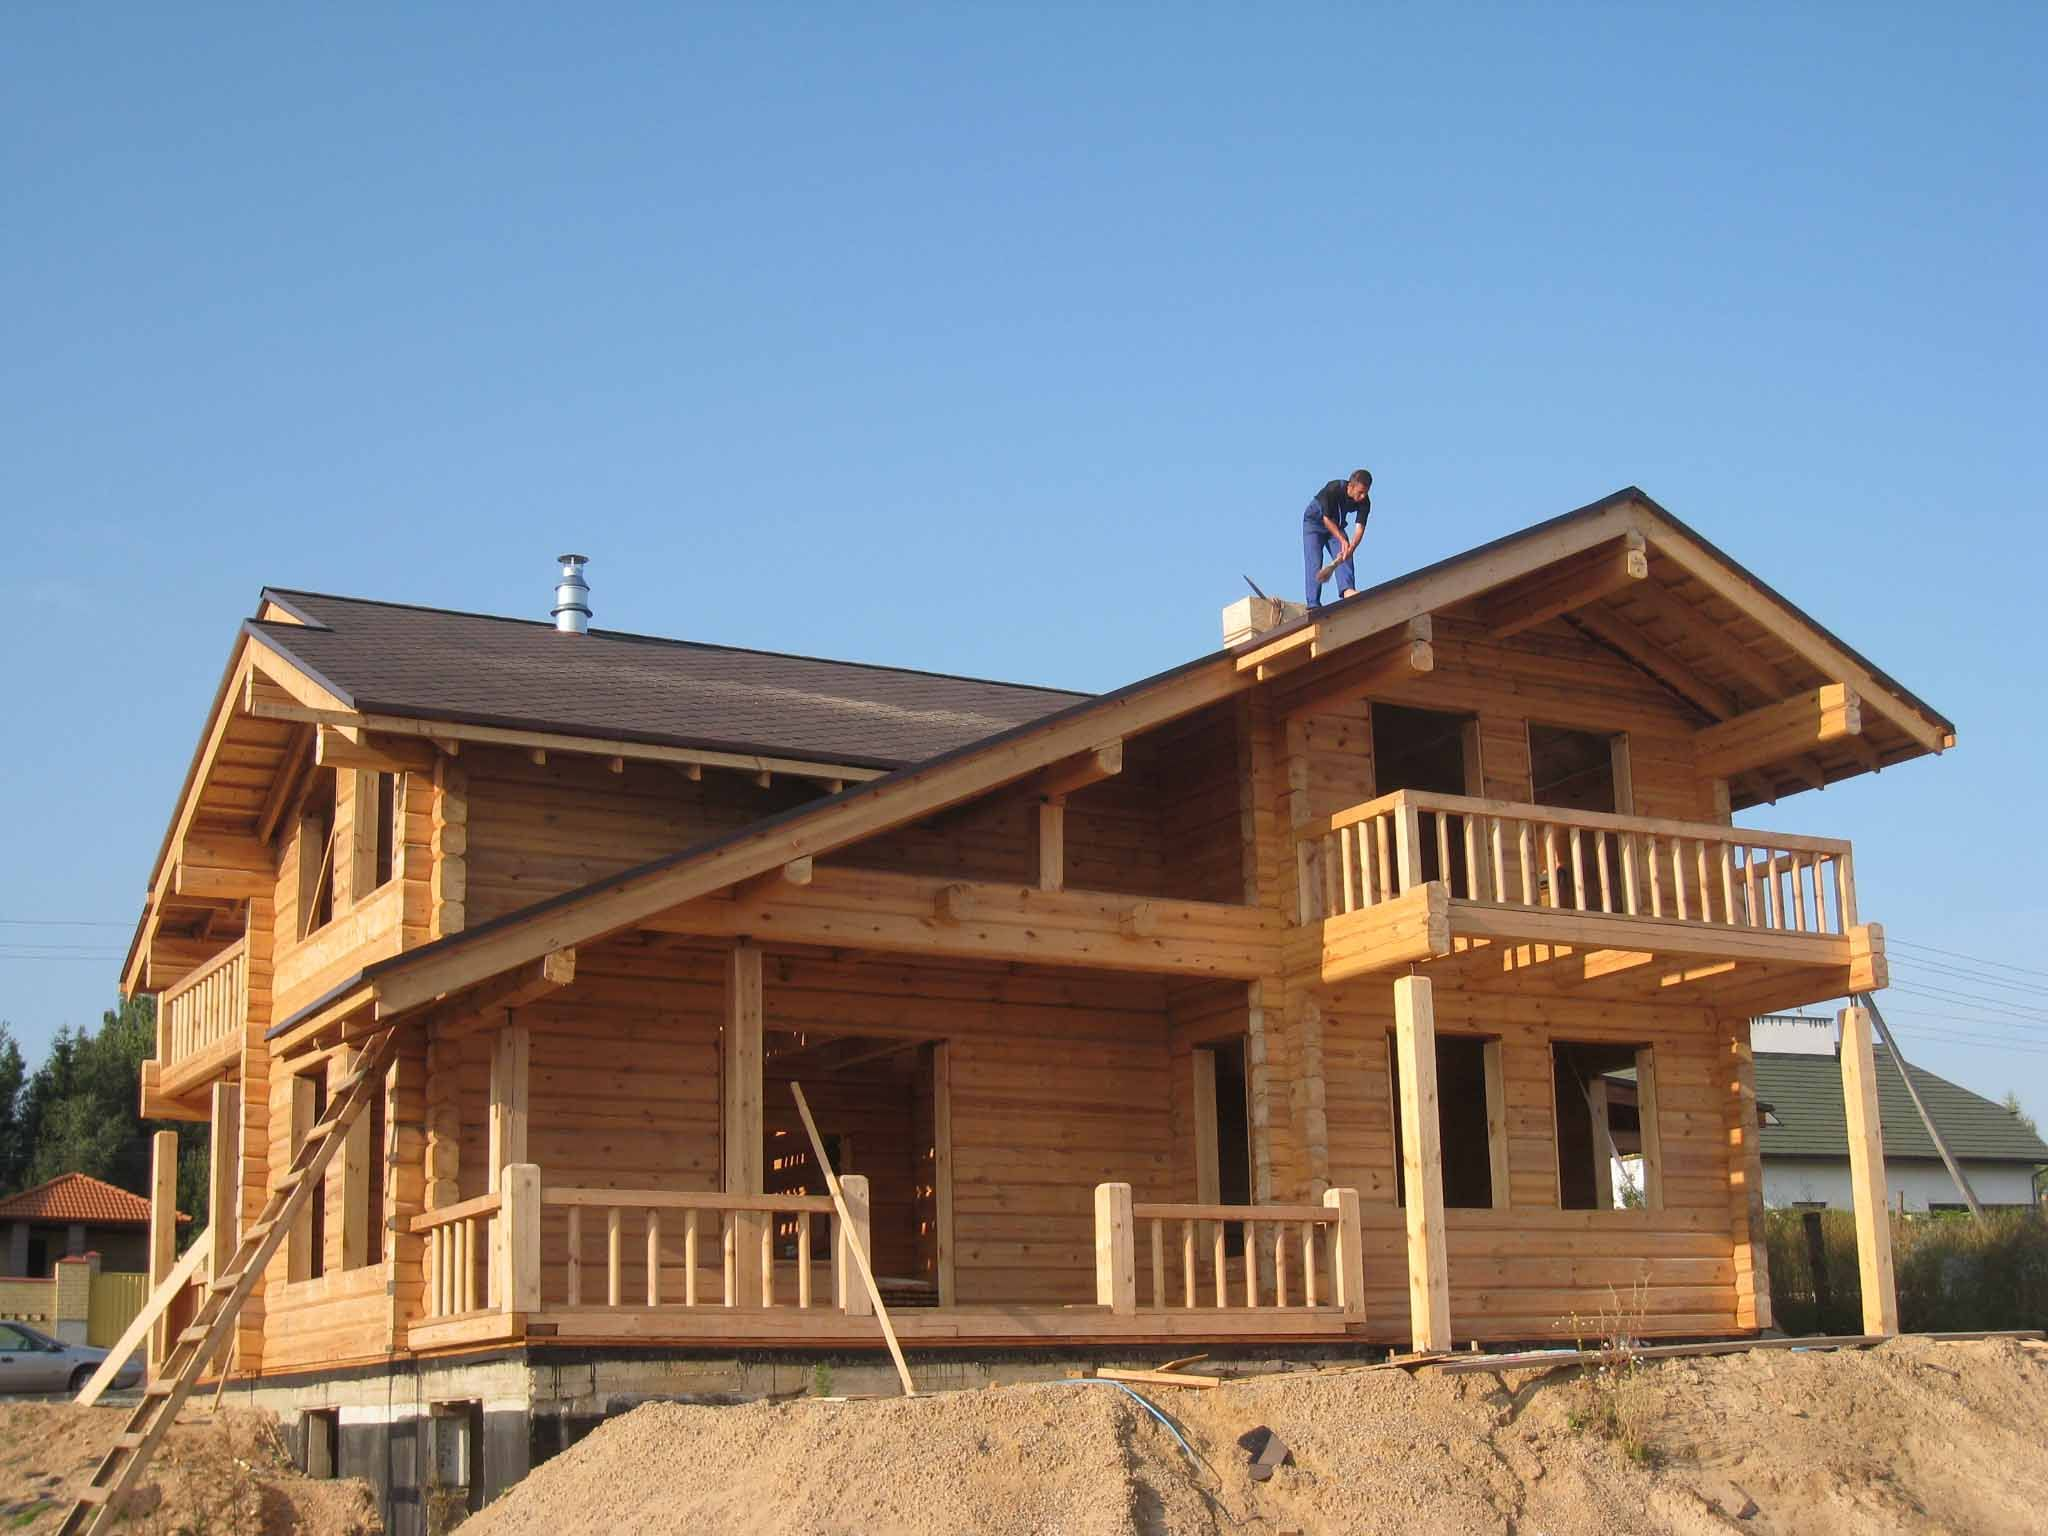 casas de madera pictures to pin on pinterest villarrica pinterest house carpentry and log cabins